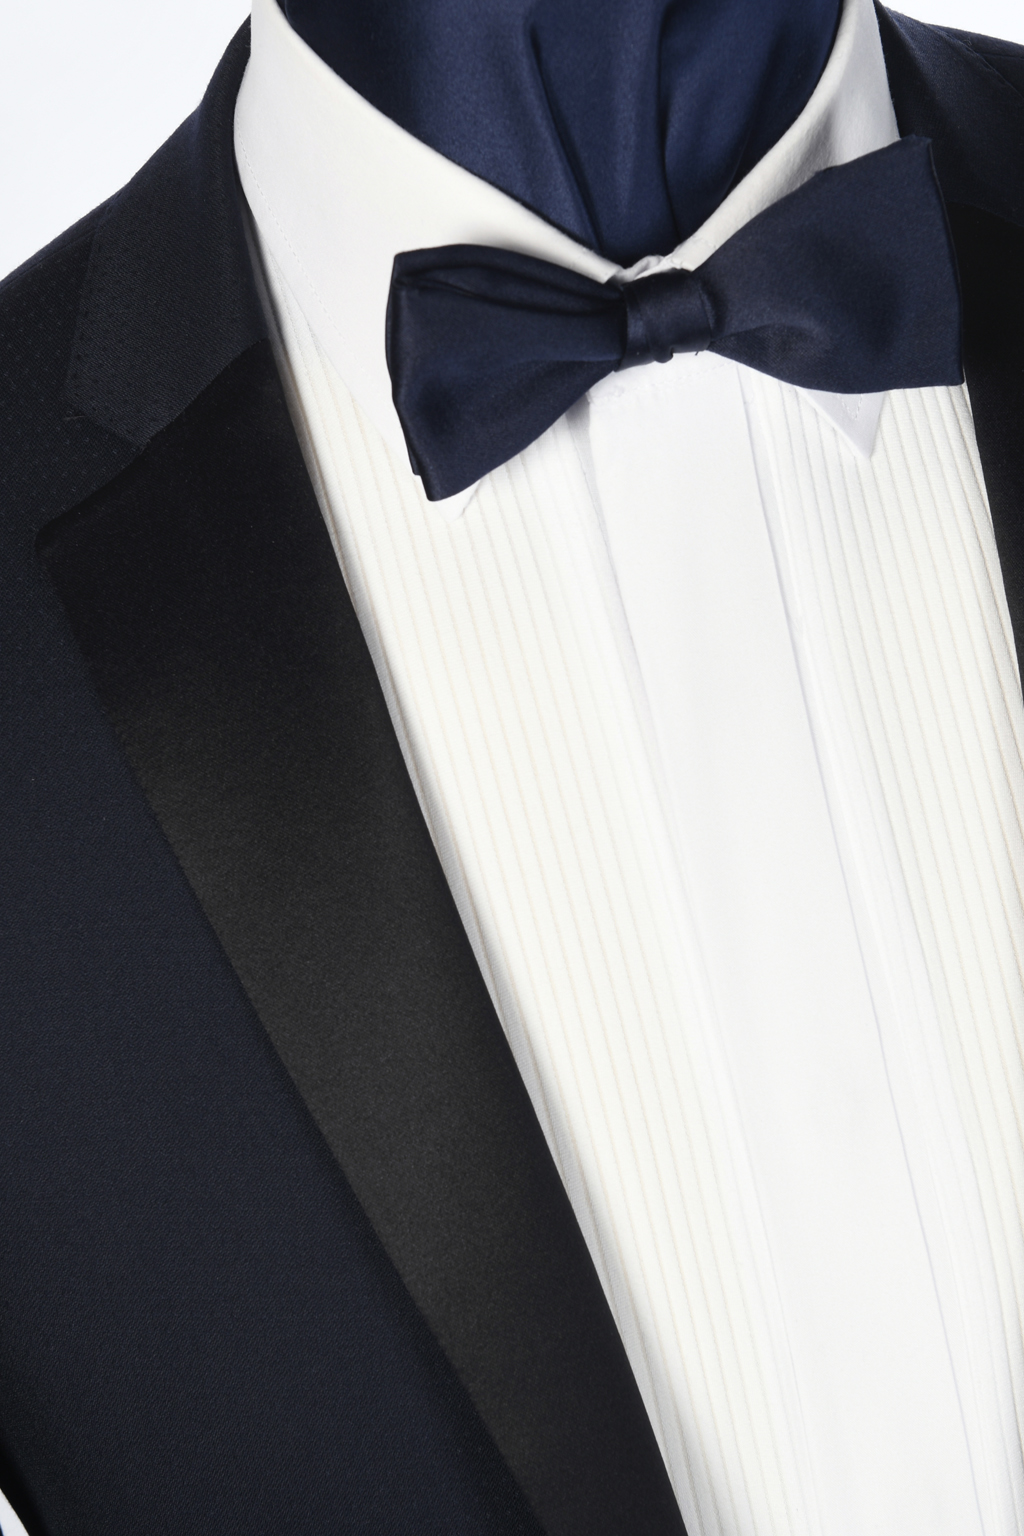 Swarbricks Suit Hire, Manchester | Evening and Prom Suits HireSuit ...